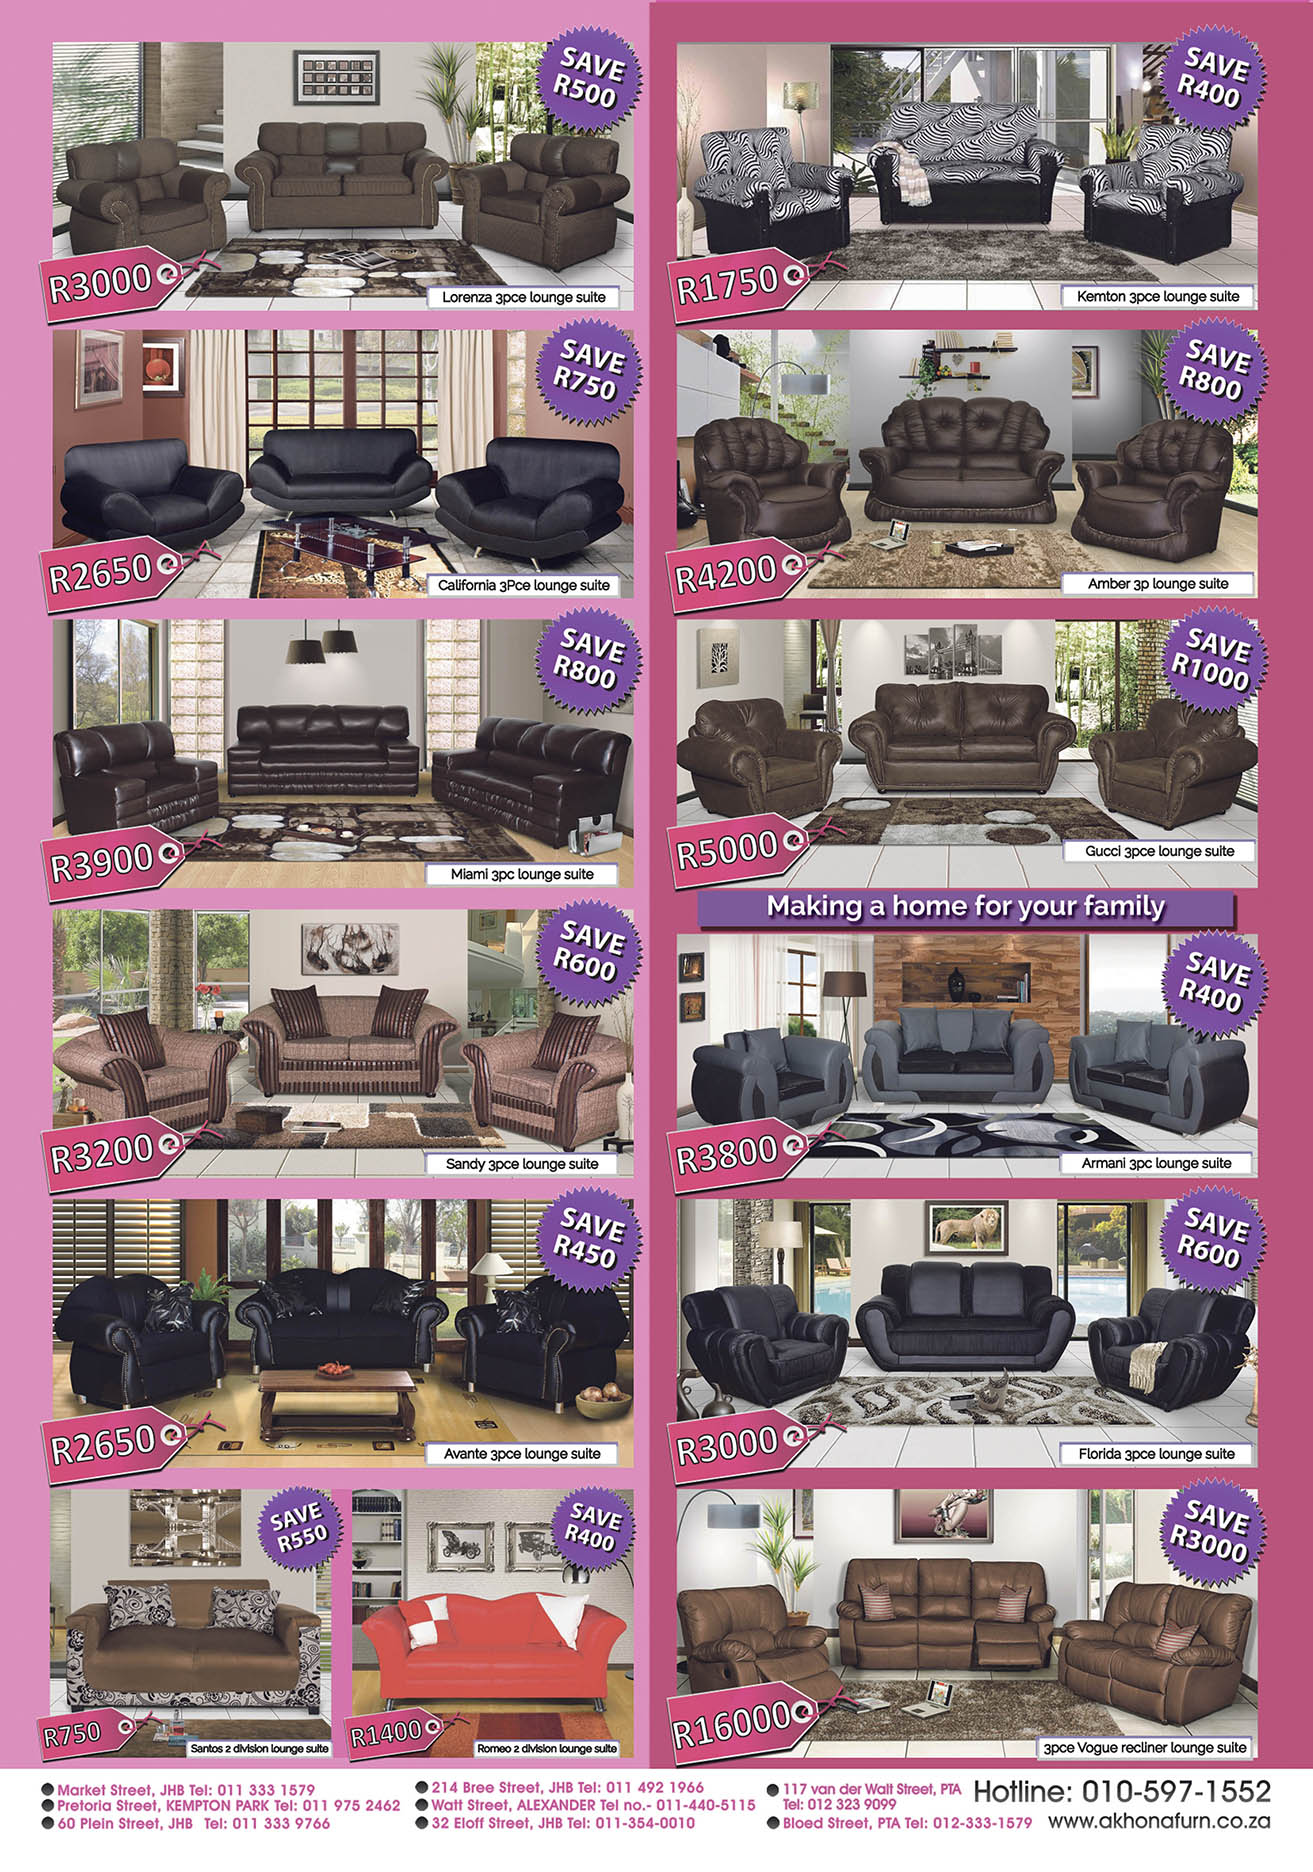 100 Sofa Prices In South Africa Joshua Doore U0026 Russells Best Deals Shop Catalogues